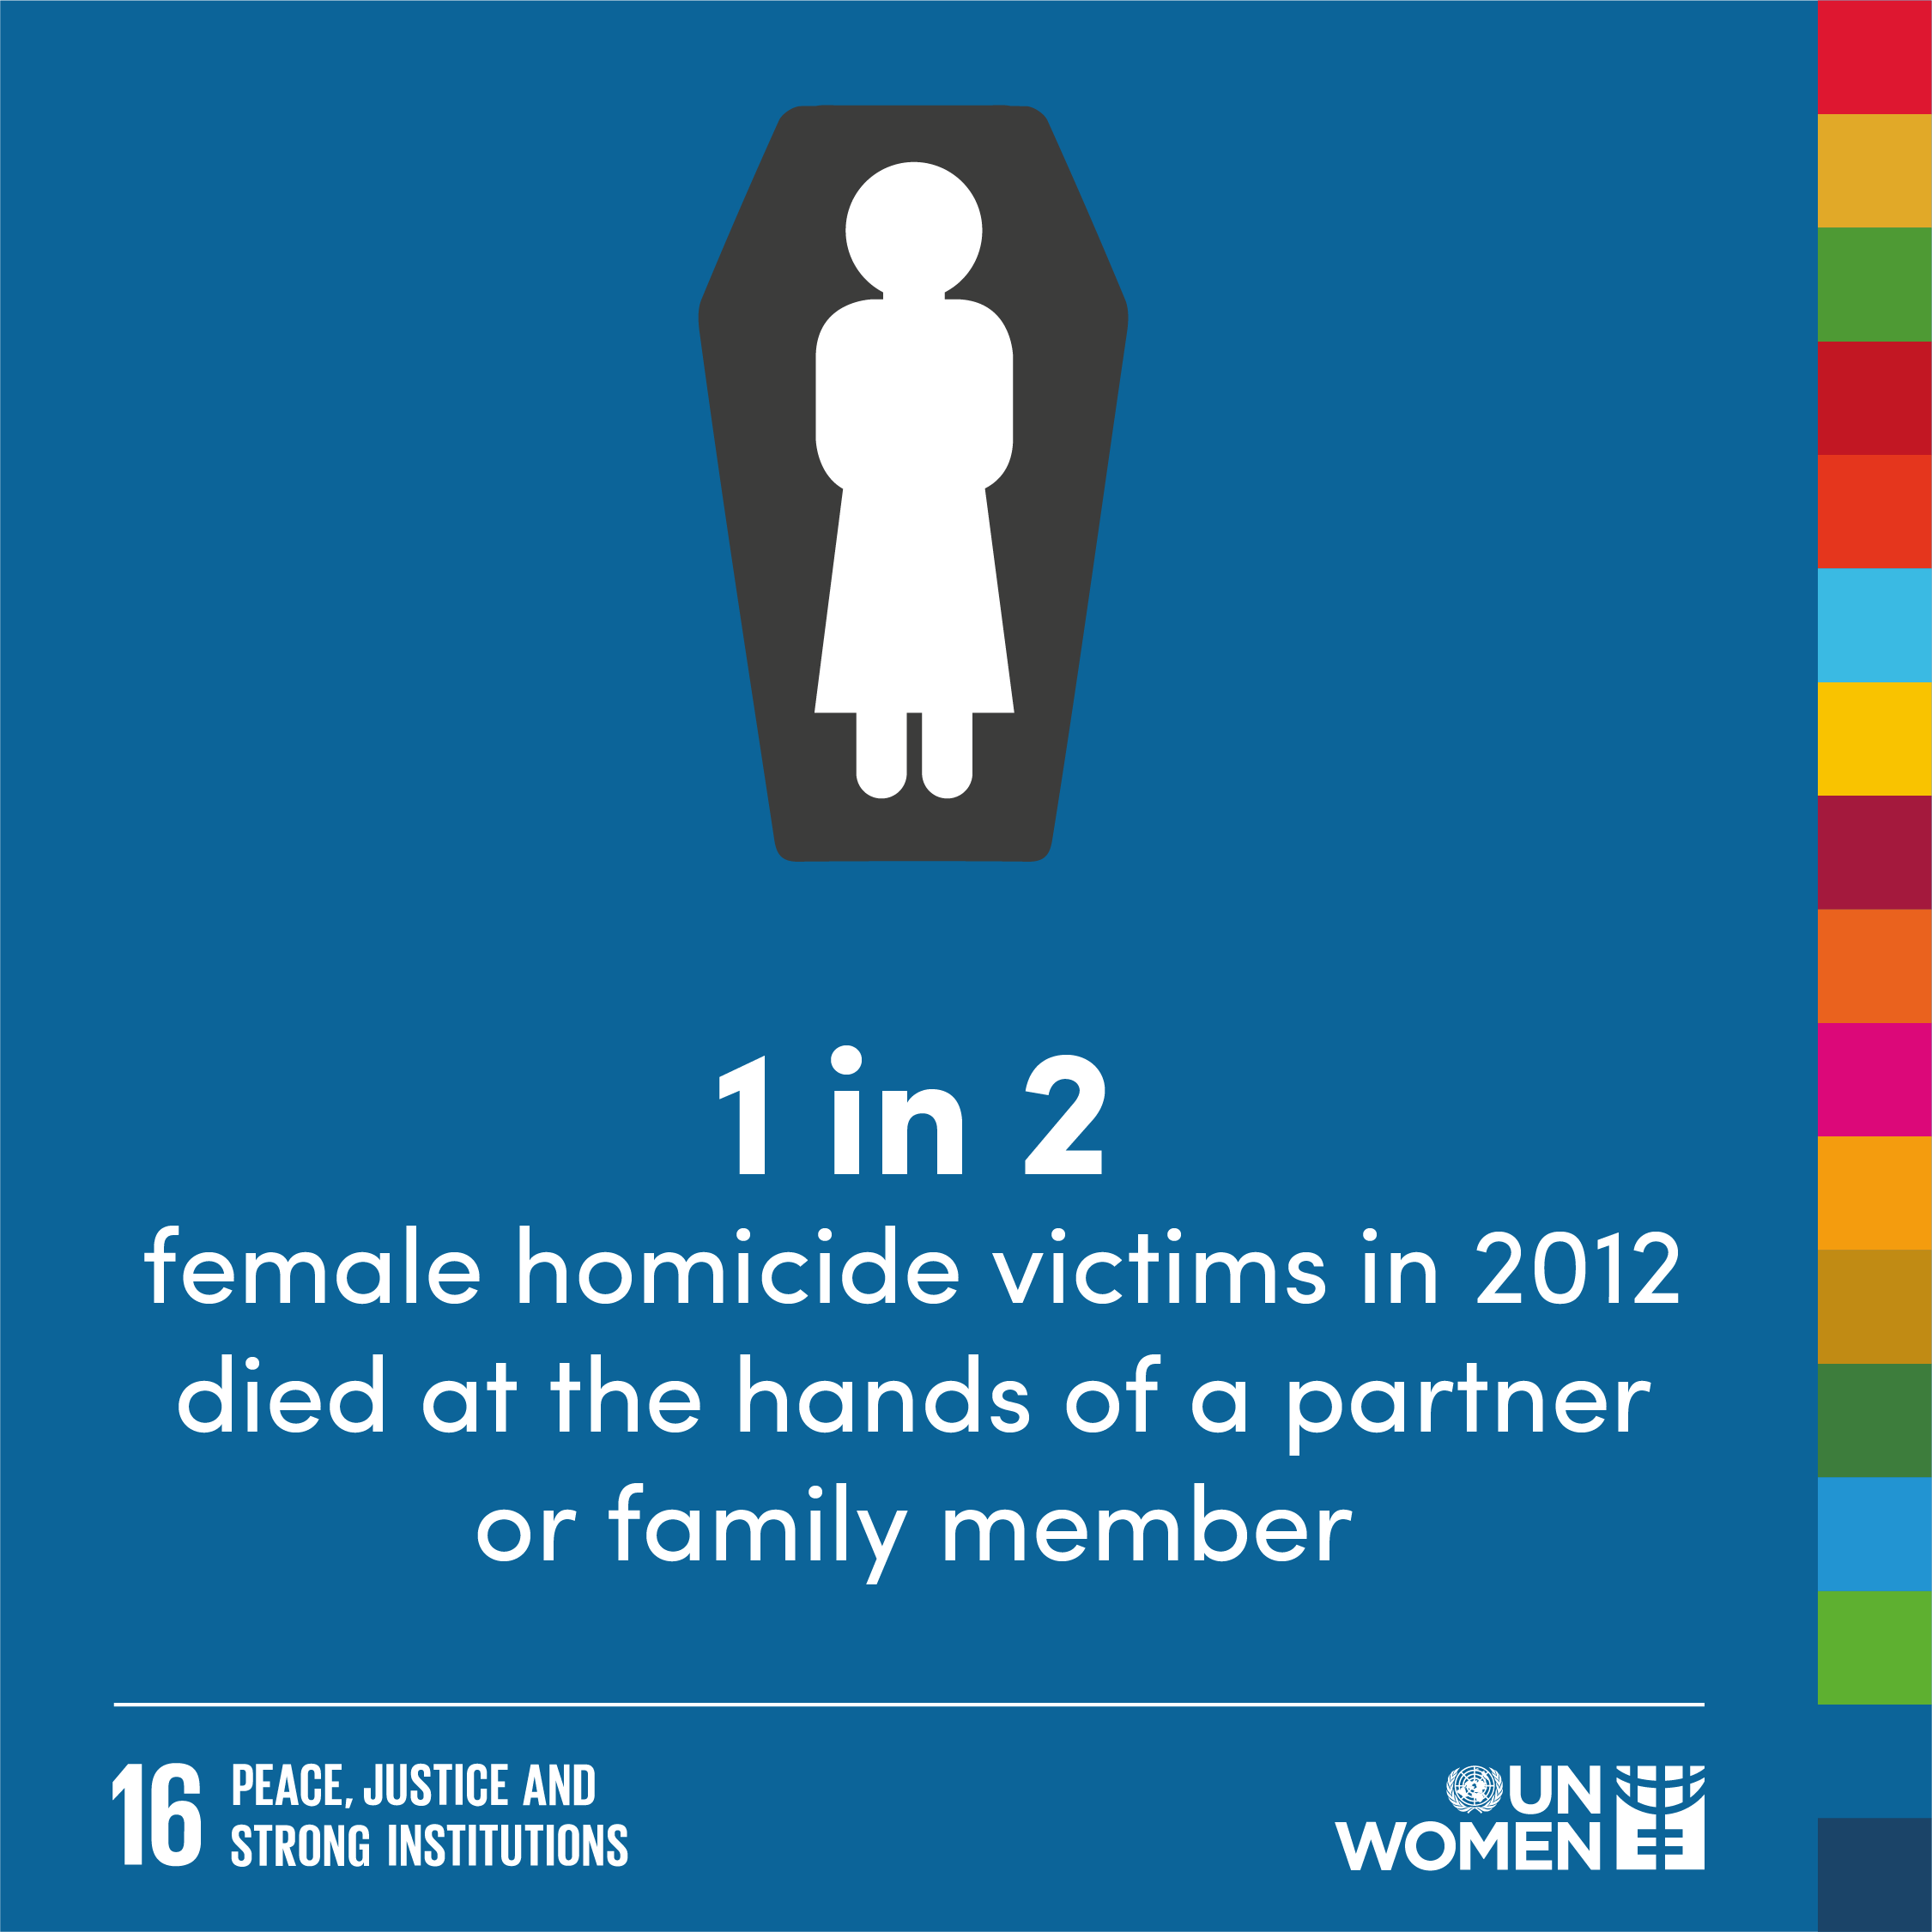 1 in 2 female homicide victims in 2012 died at the hands of a partner or family member.